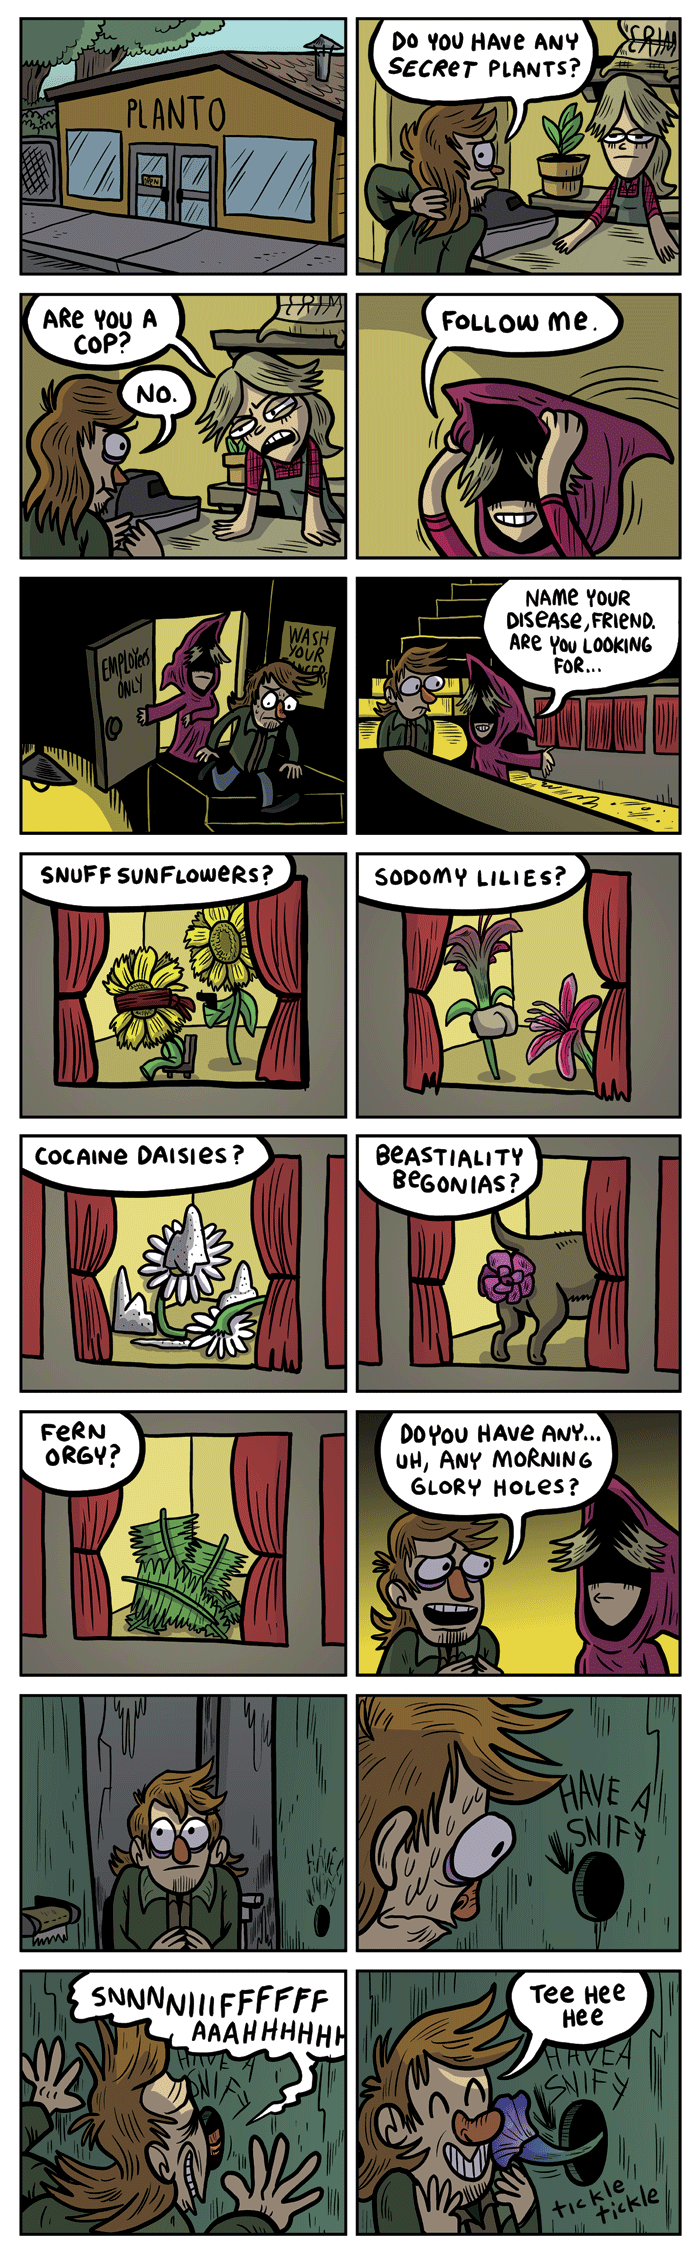 20111202-secretplants.png